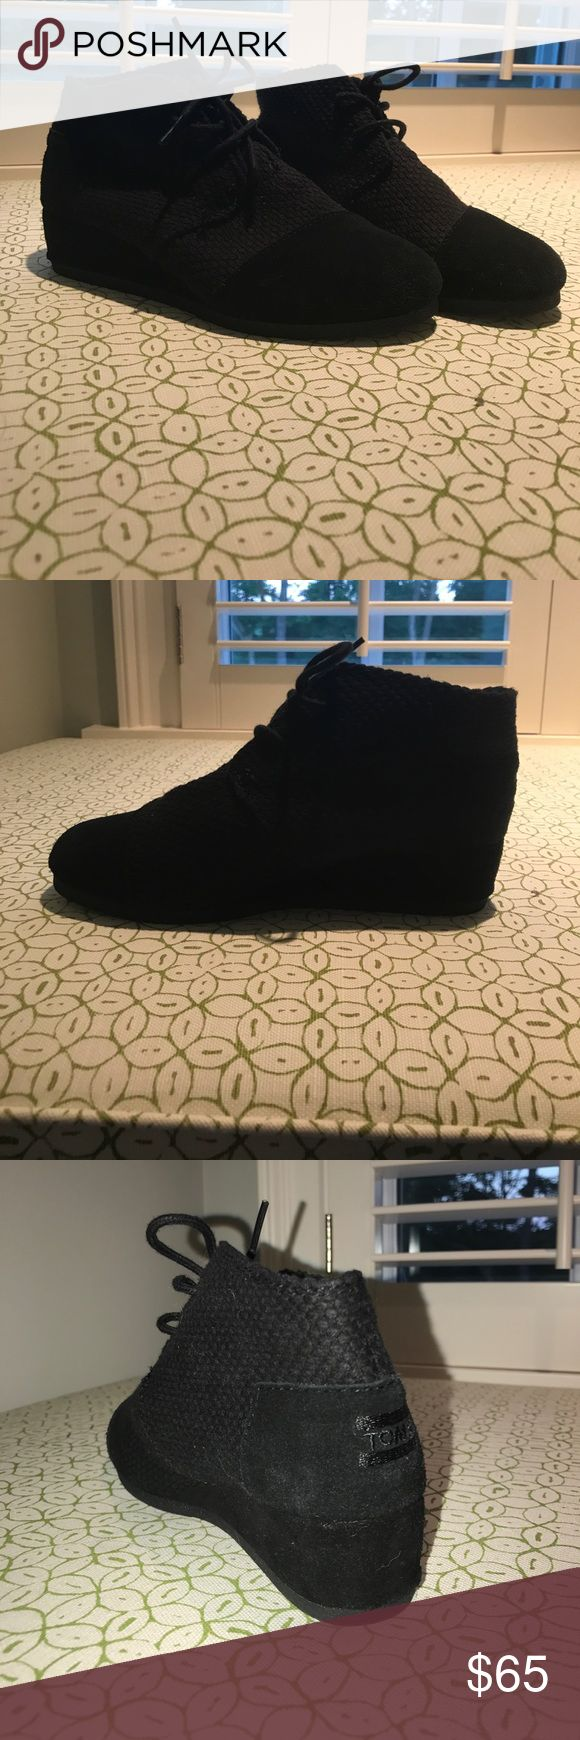 Toms wedge booties Great shape very clean and barely used! Size EU 36 black booties with a very low wedge. Super comfortable sold for $70. TOMS Shoes Ankle Boots & Booties